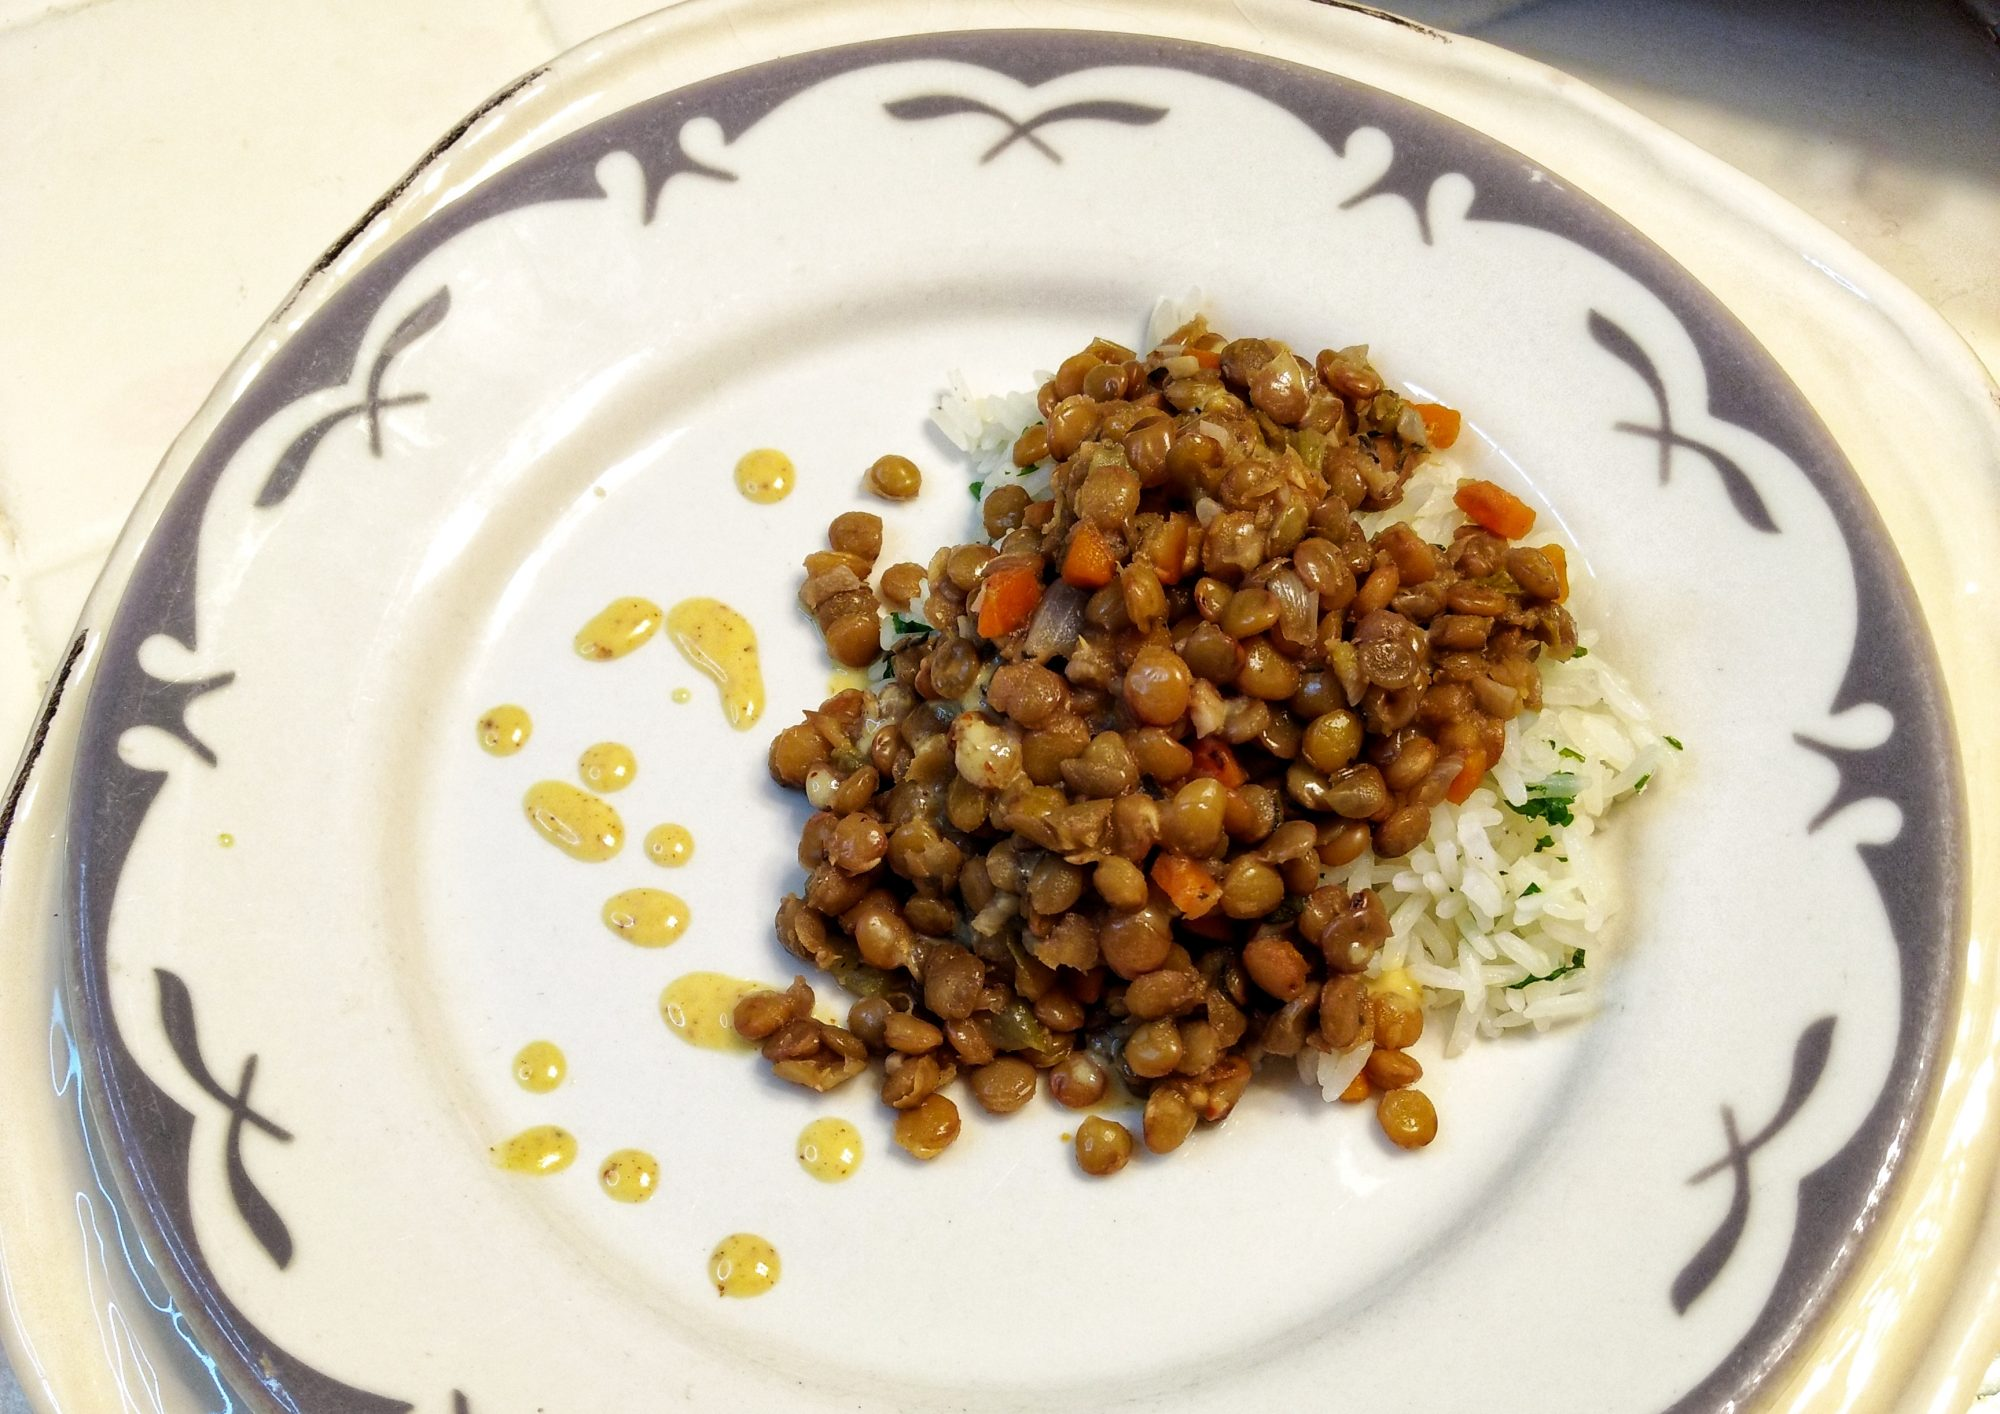 Warm Lentils on a Cold Night